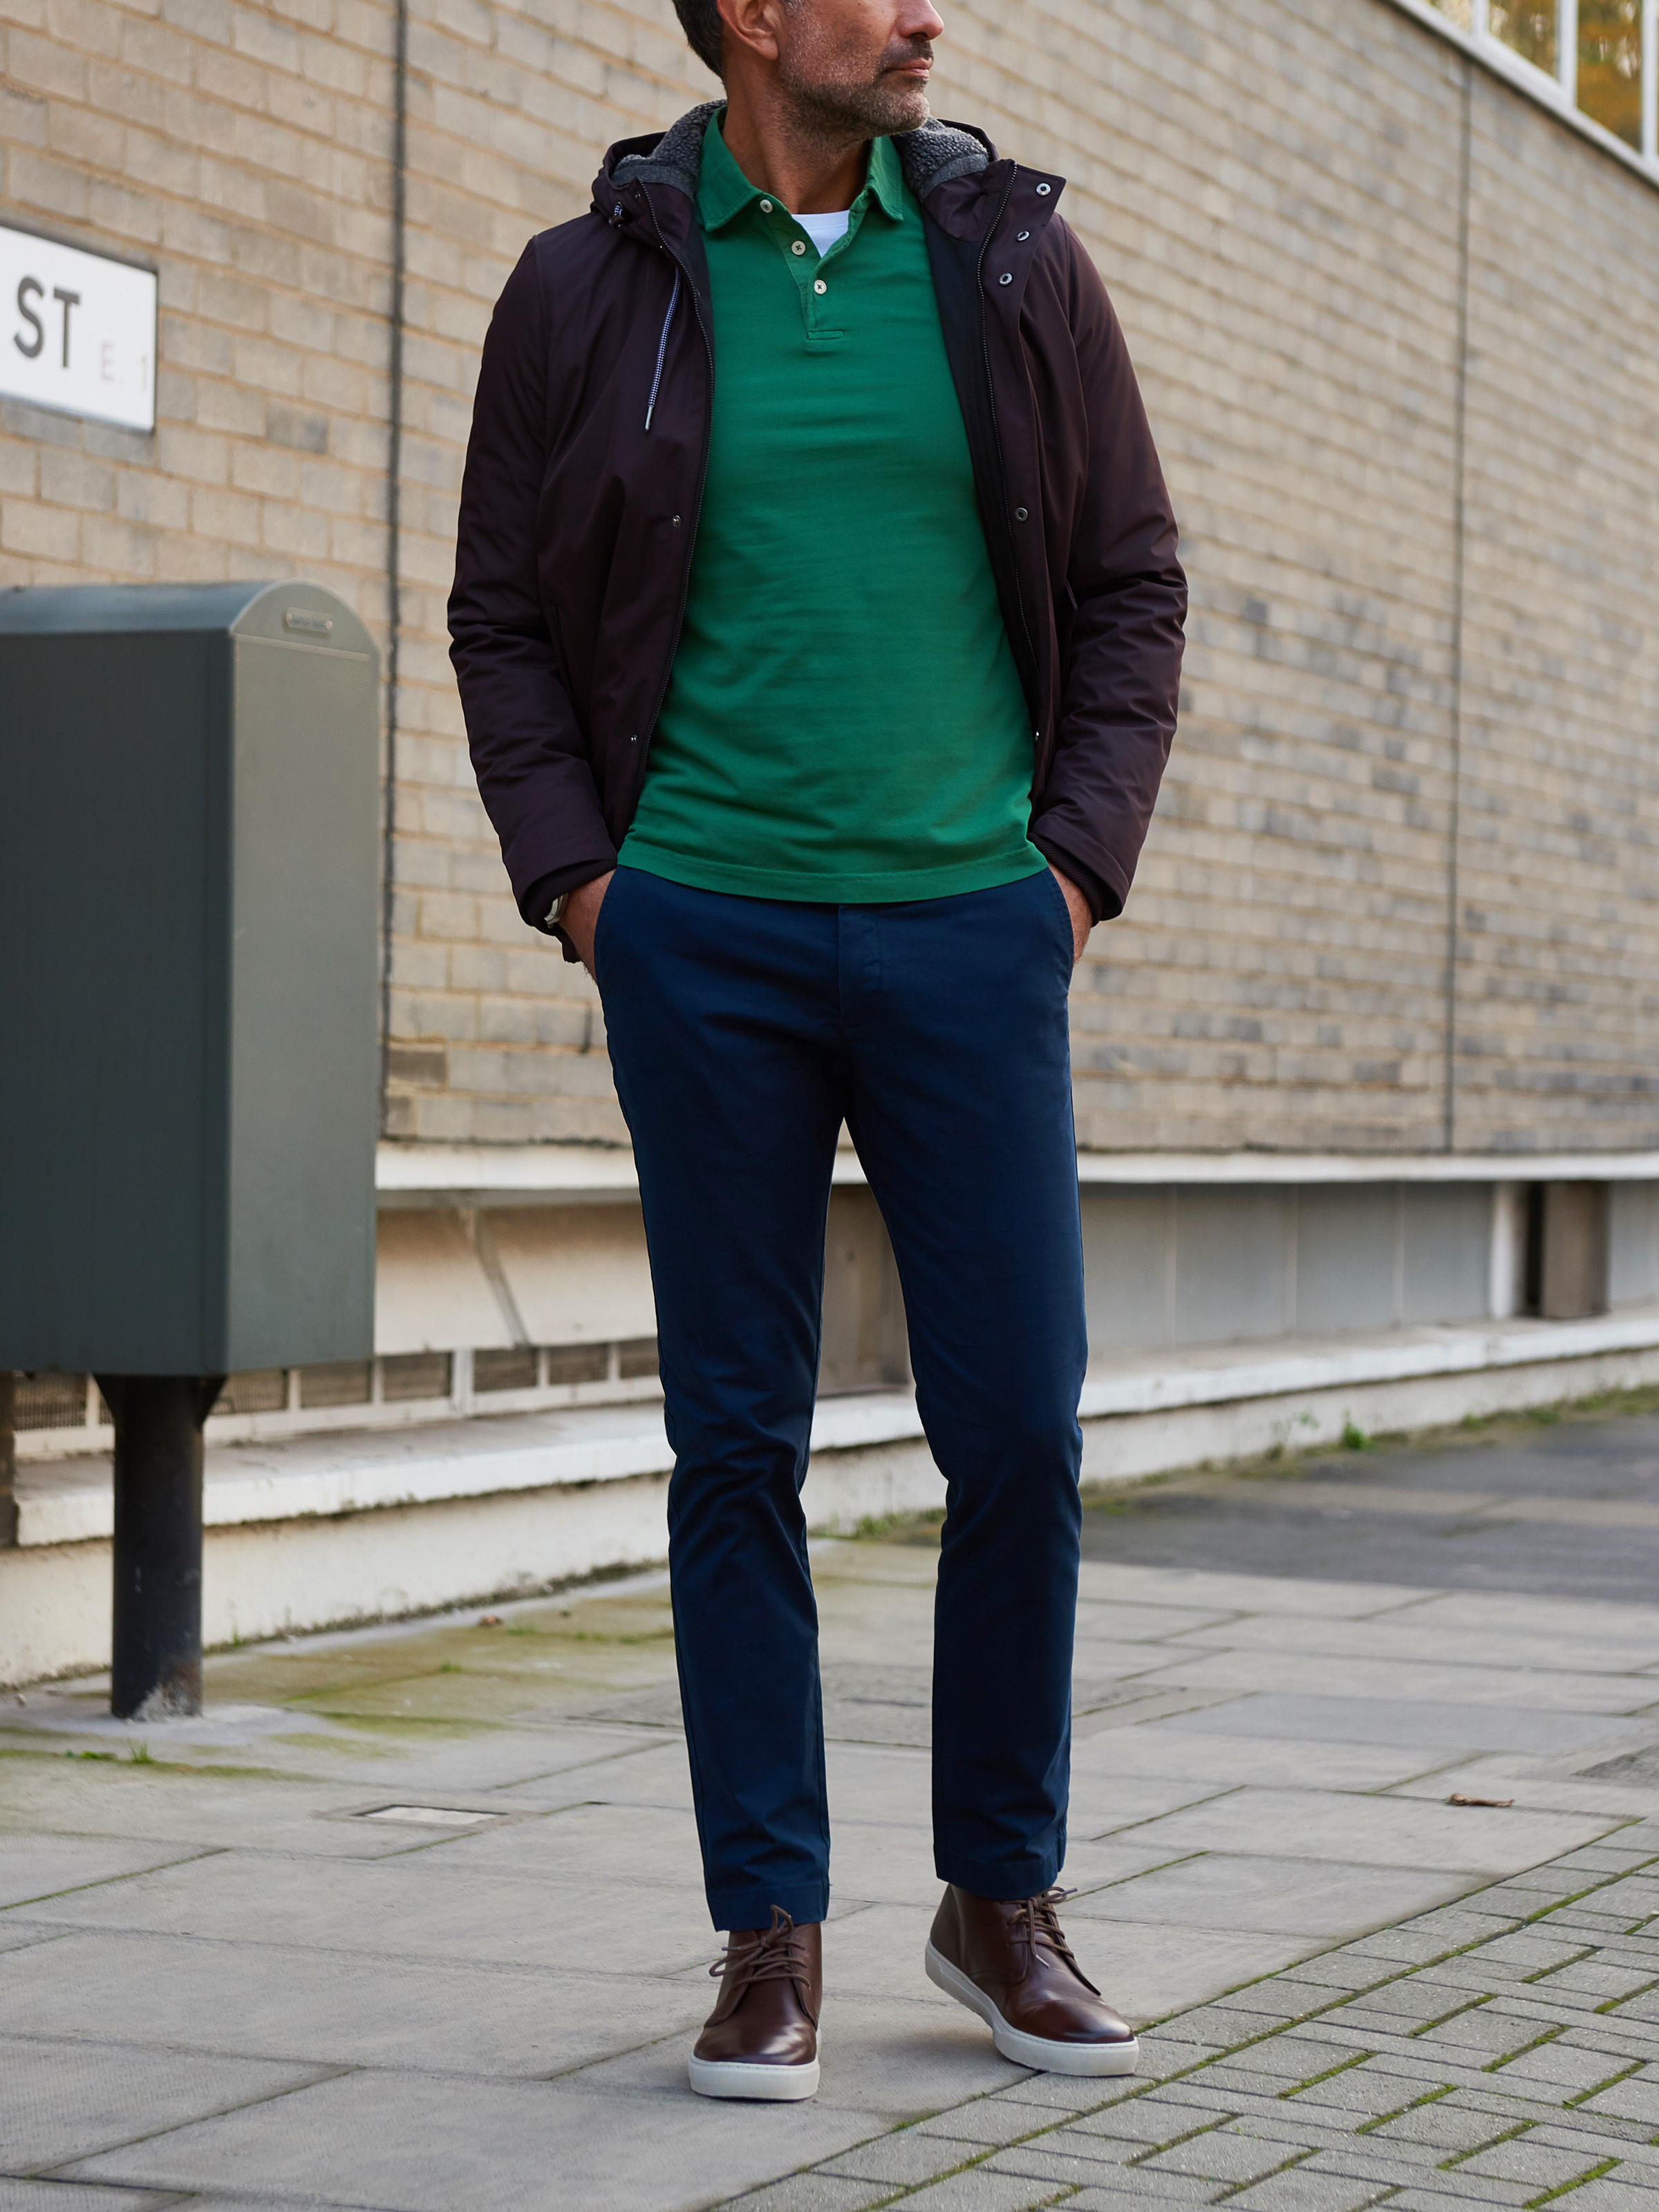 Men's outfit idea for 2021 with waterproof jacket / windbreaker, green long-sleeved polo, navy chinos, chukka boots. Suitable for fall and winter.